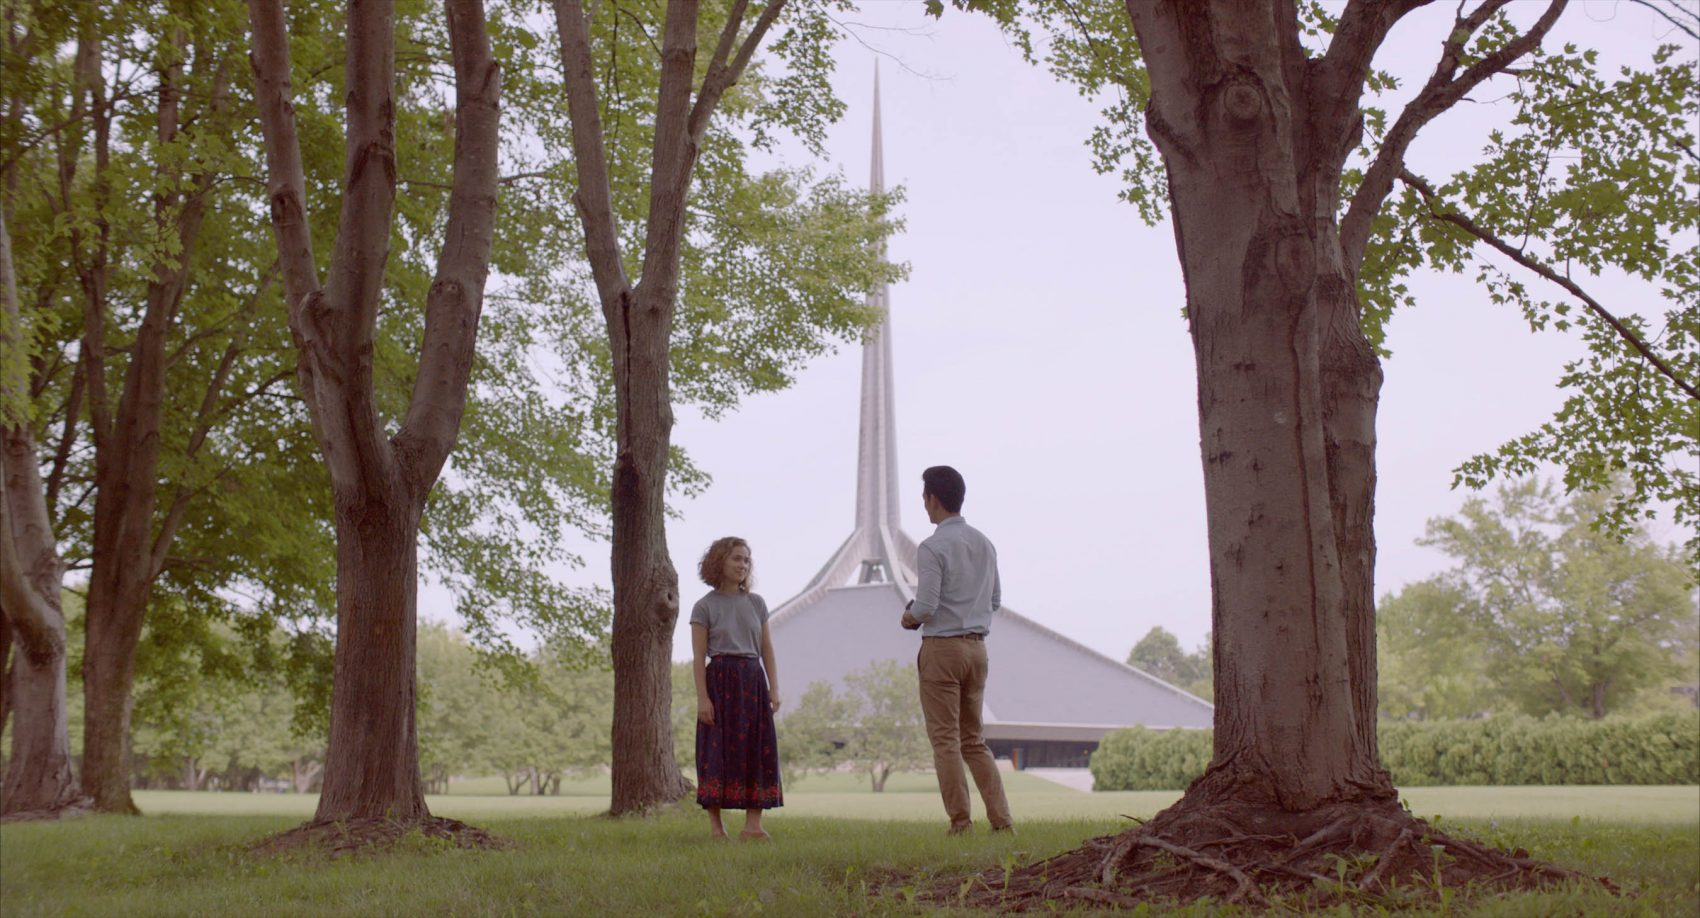 """Haley Lu Richardson and John Cho star in """"Columbus,"""" playing at the Brattle Theatre. The building in the background is the North Christian Church by architect Eero Saarinen.  (Courtesy Elisha Christian)"""